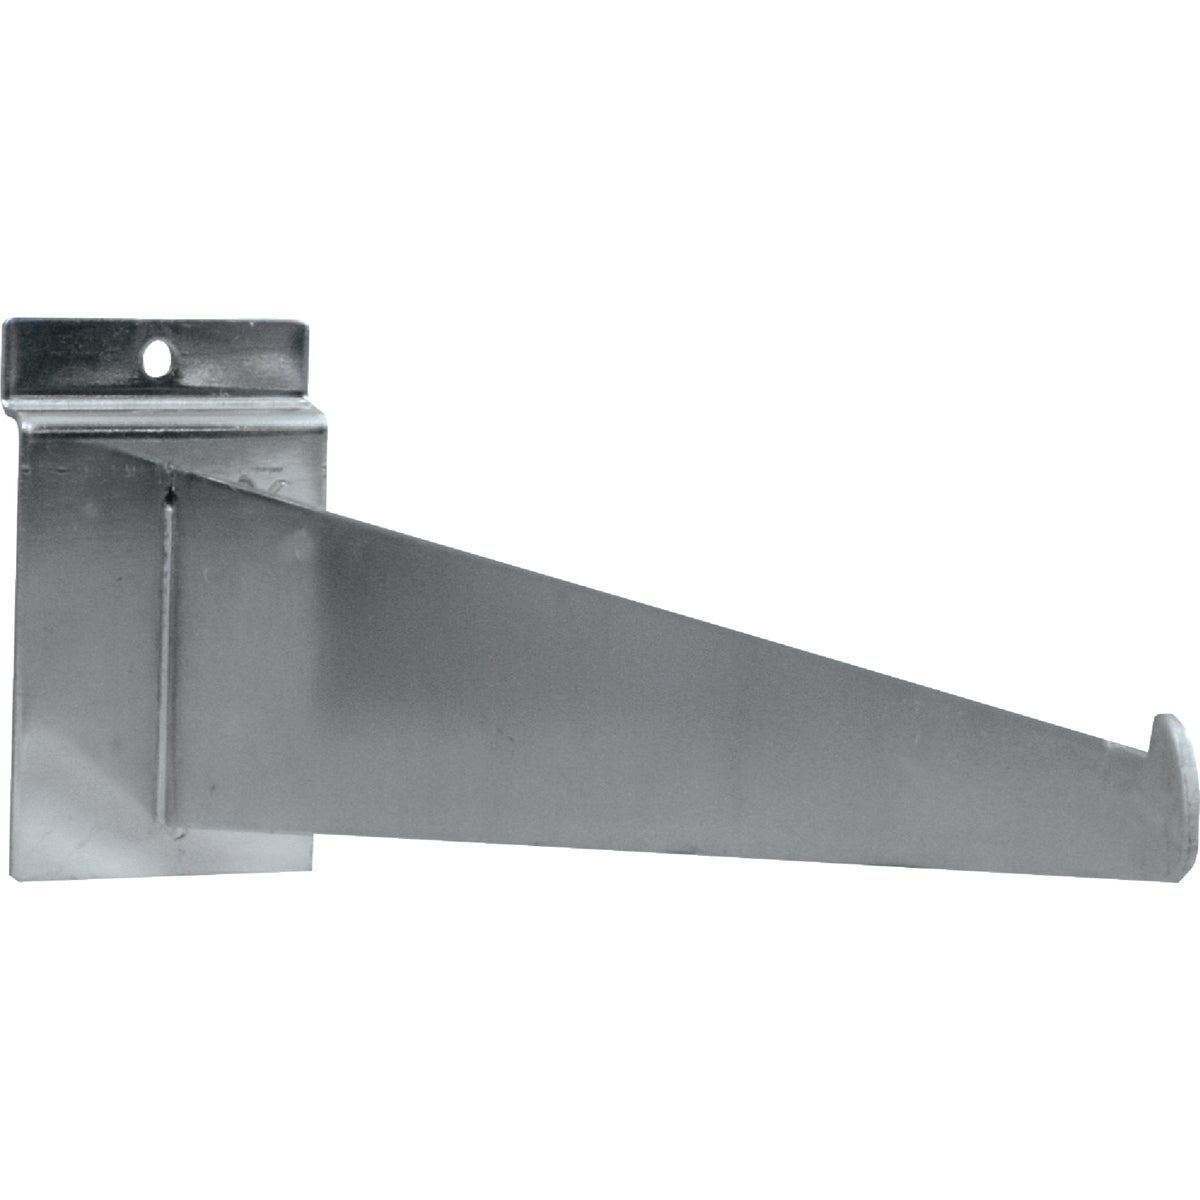 "2PK 10"" SHELF BRACKET - ABKB-10K by Garage Escape"